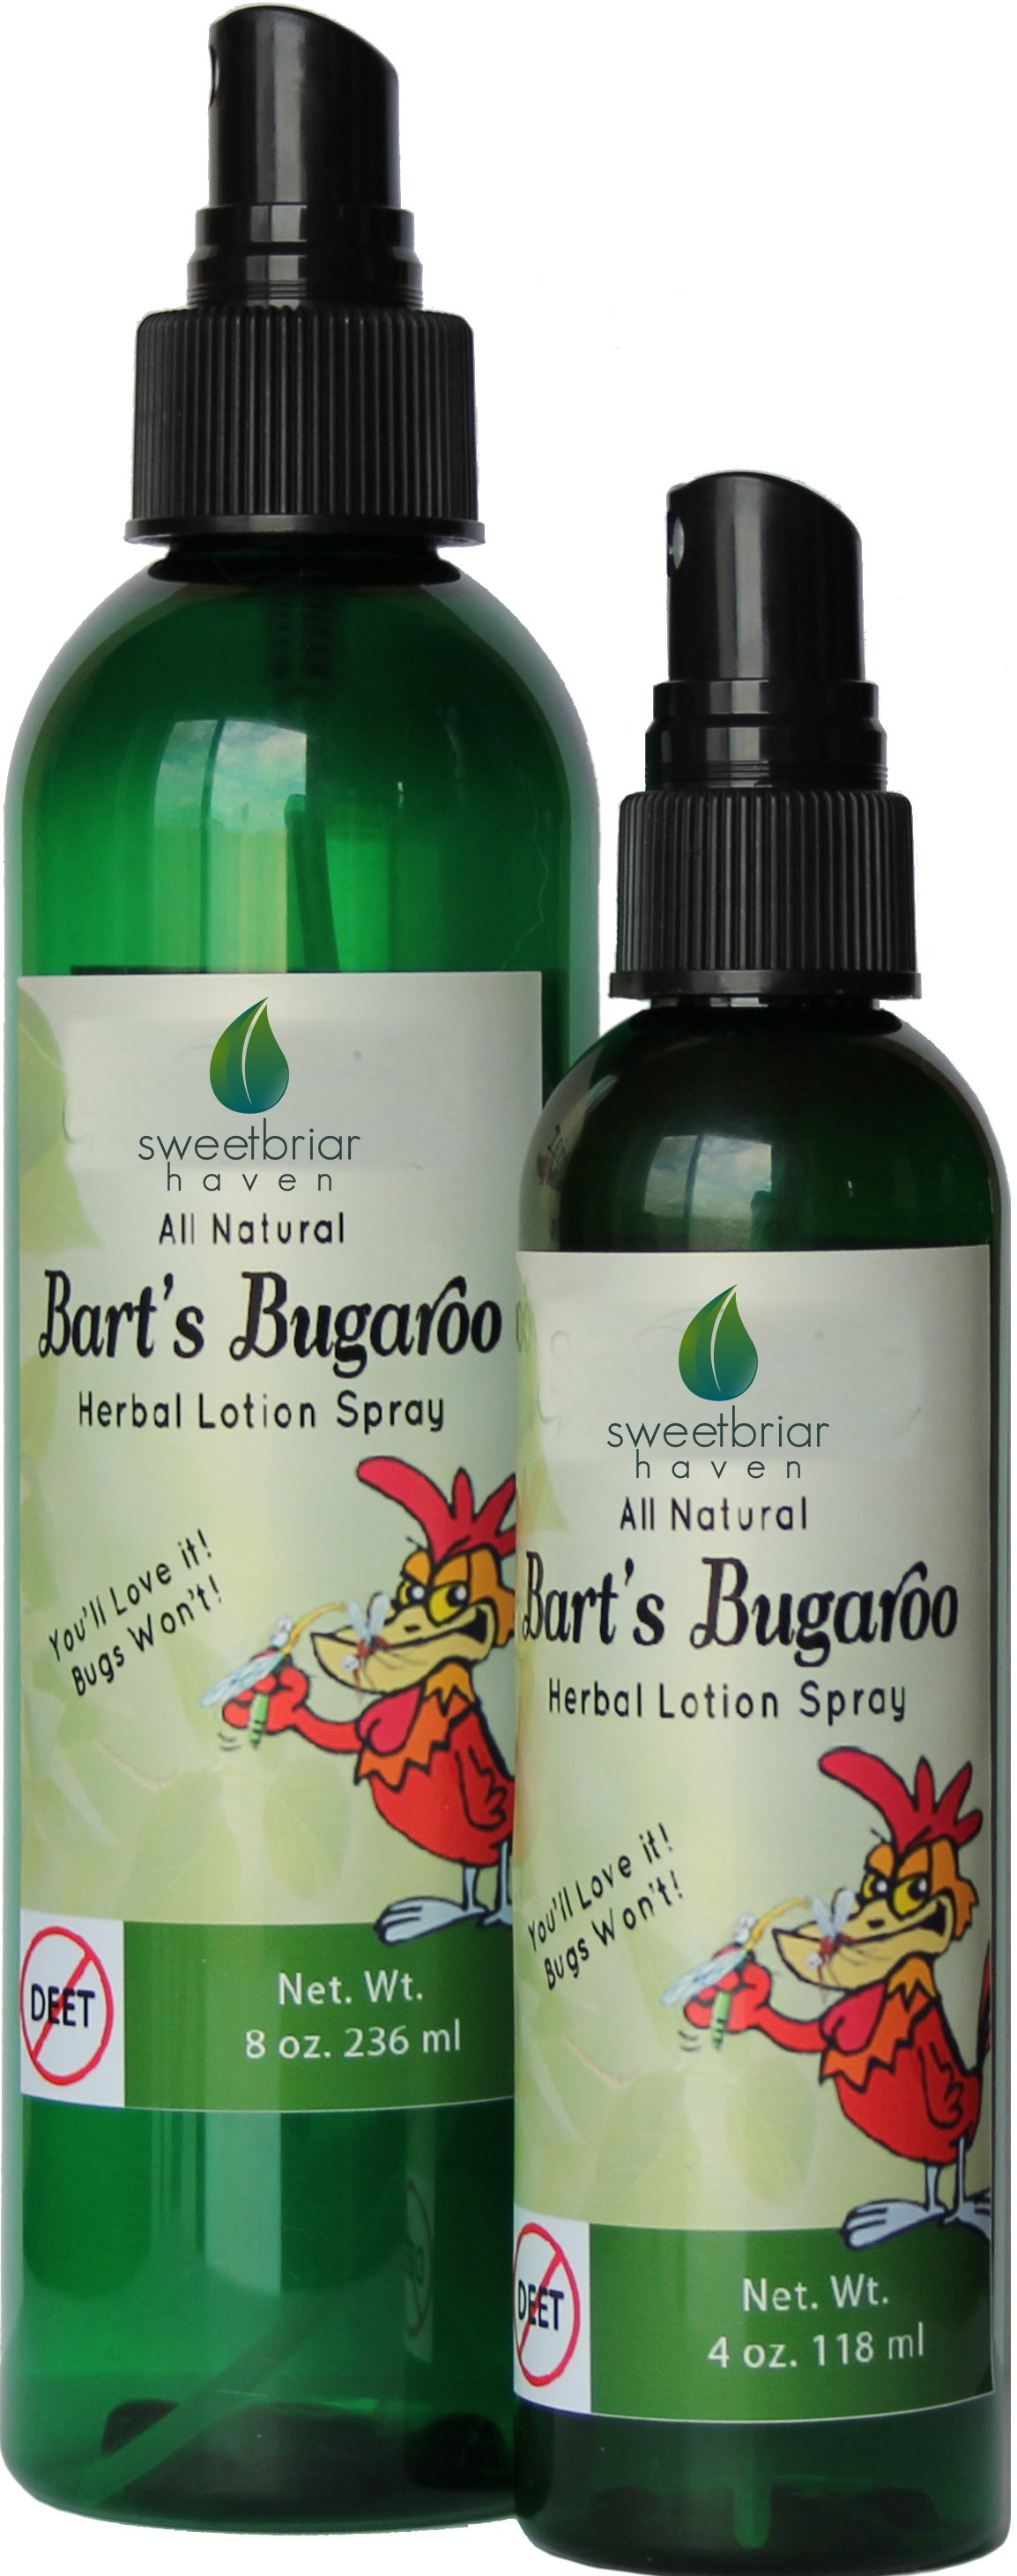 Image of Bart's Bugaroo Bug Spray